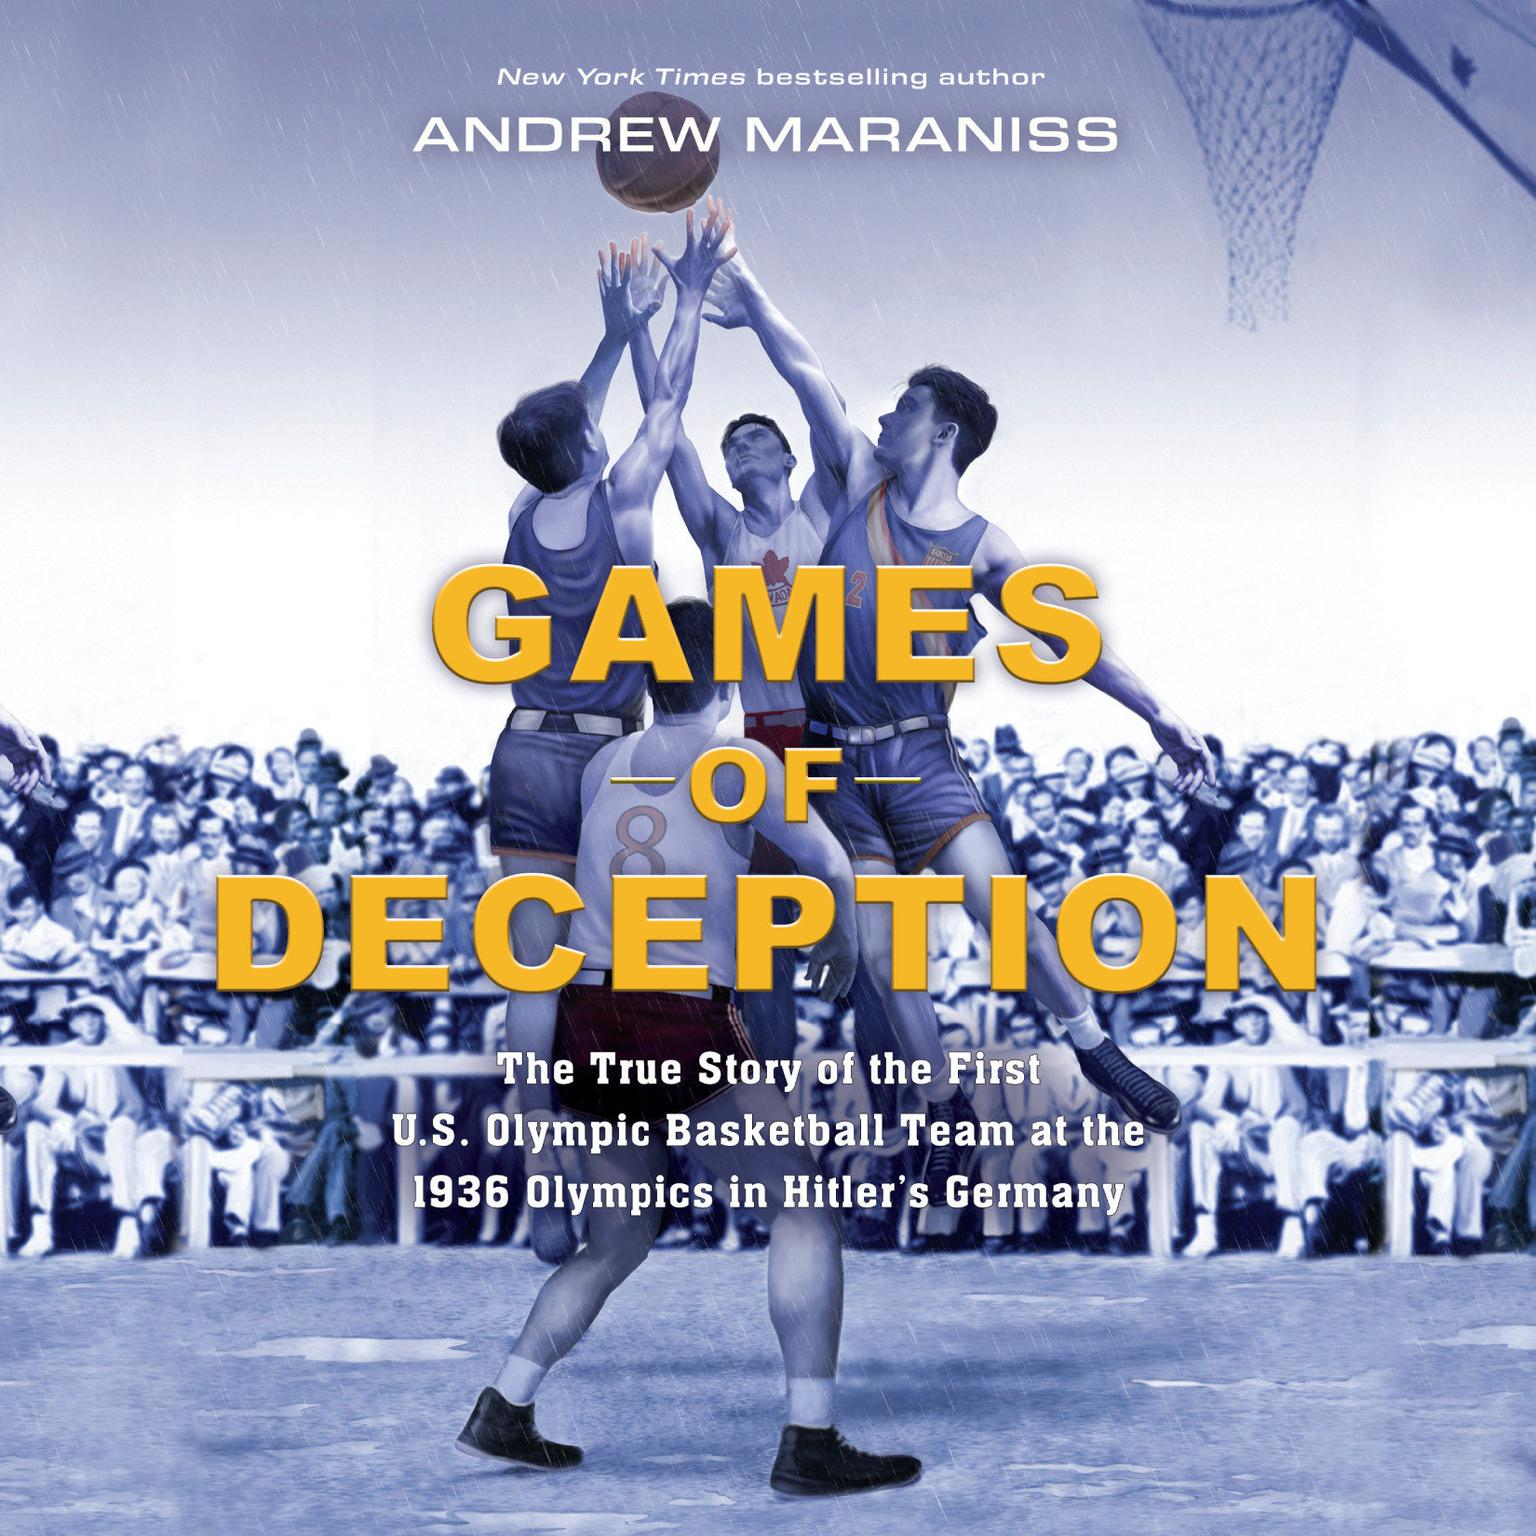 Printable Games of Deception: The True Story of the First U.S. Olympic Basketball Team at the 1936 Olympics in Hitler's Germany Audiobook Cover Art